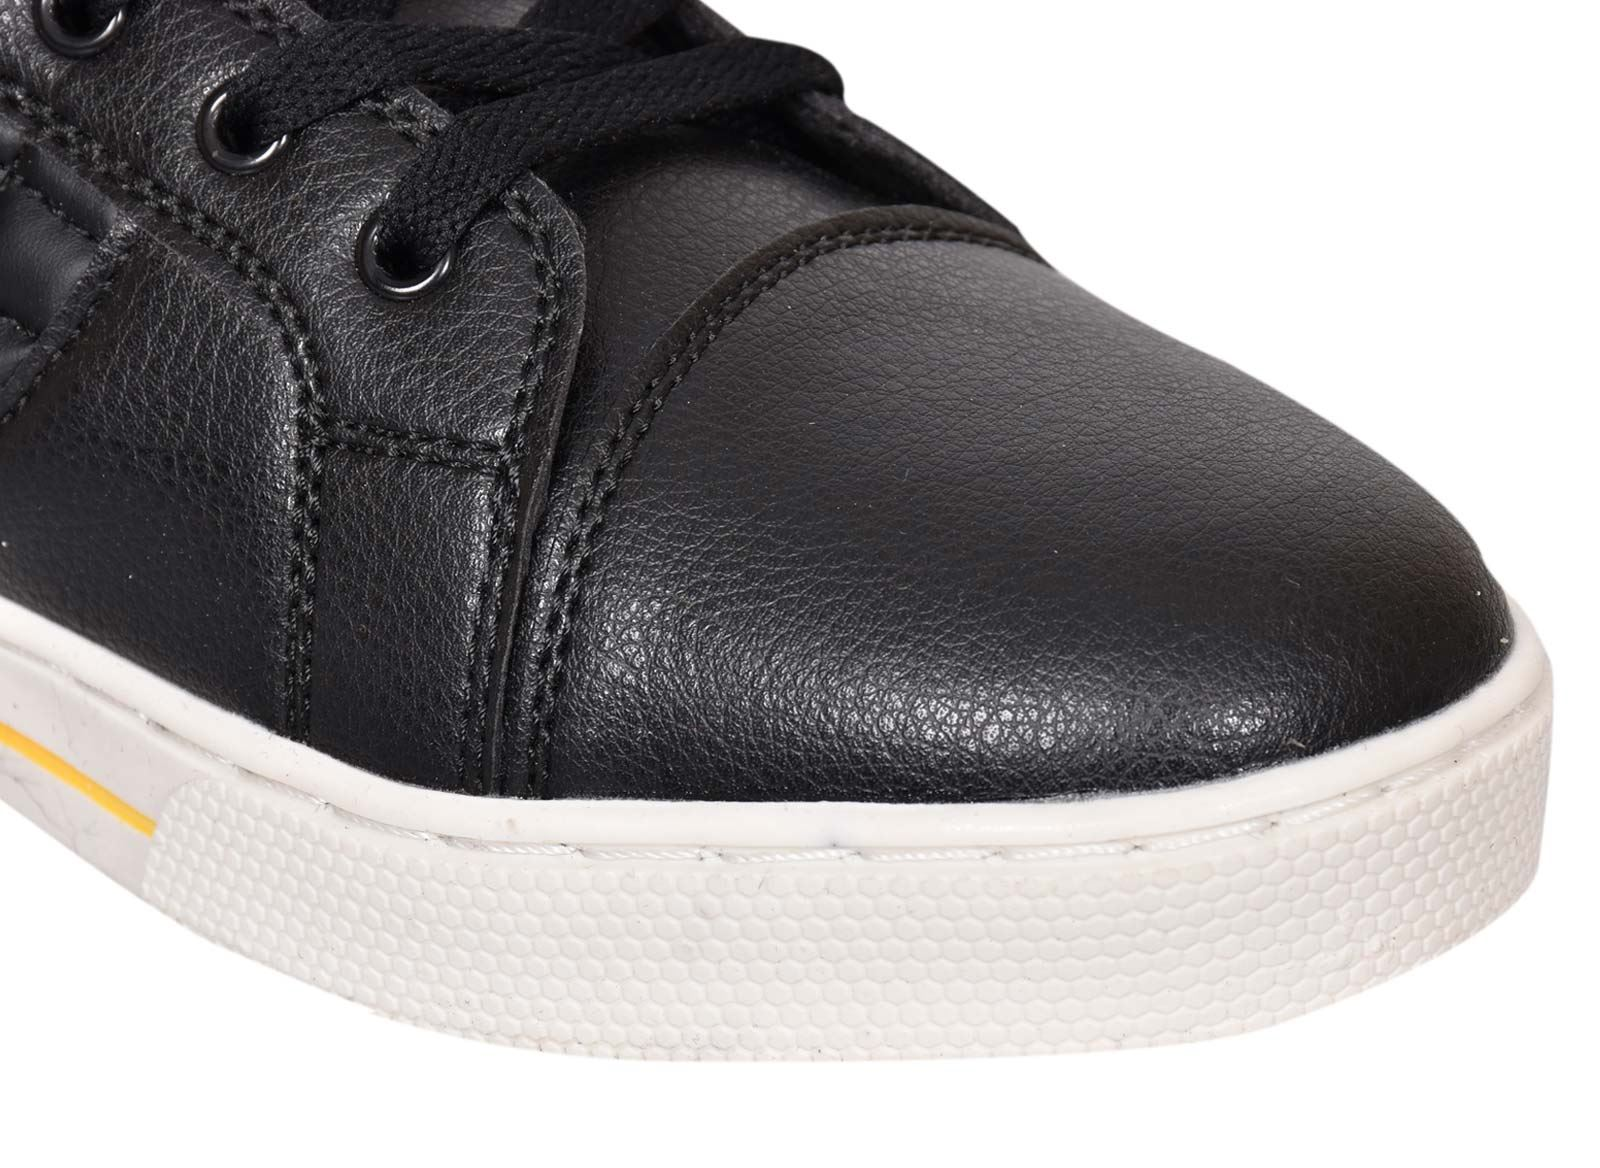 Mens-Trainers-Lace-up-Crosshatch-High-Tops-Ankle-Padded-Shoes-New-UK-Sizes-7-12 thumbnail 9